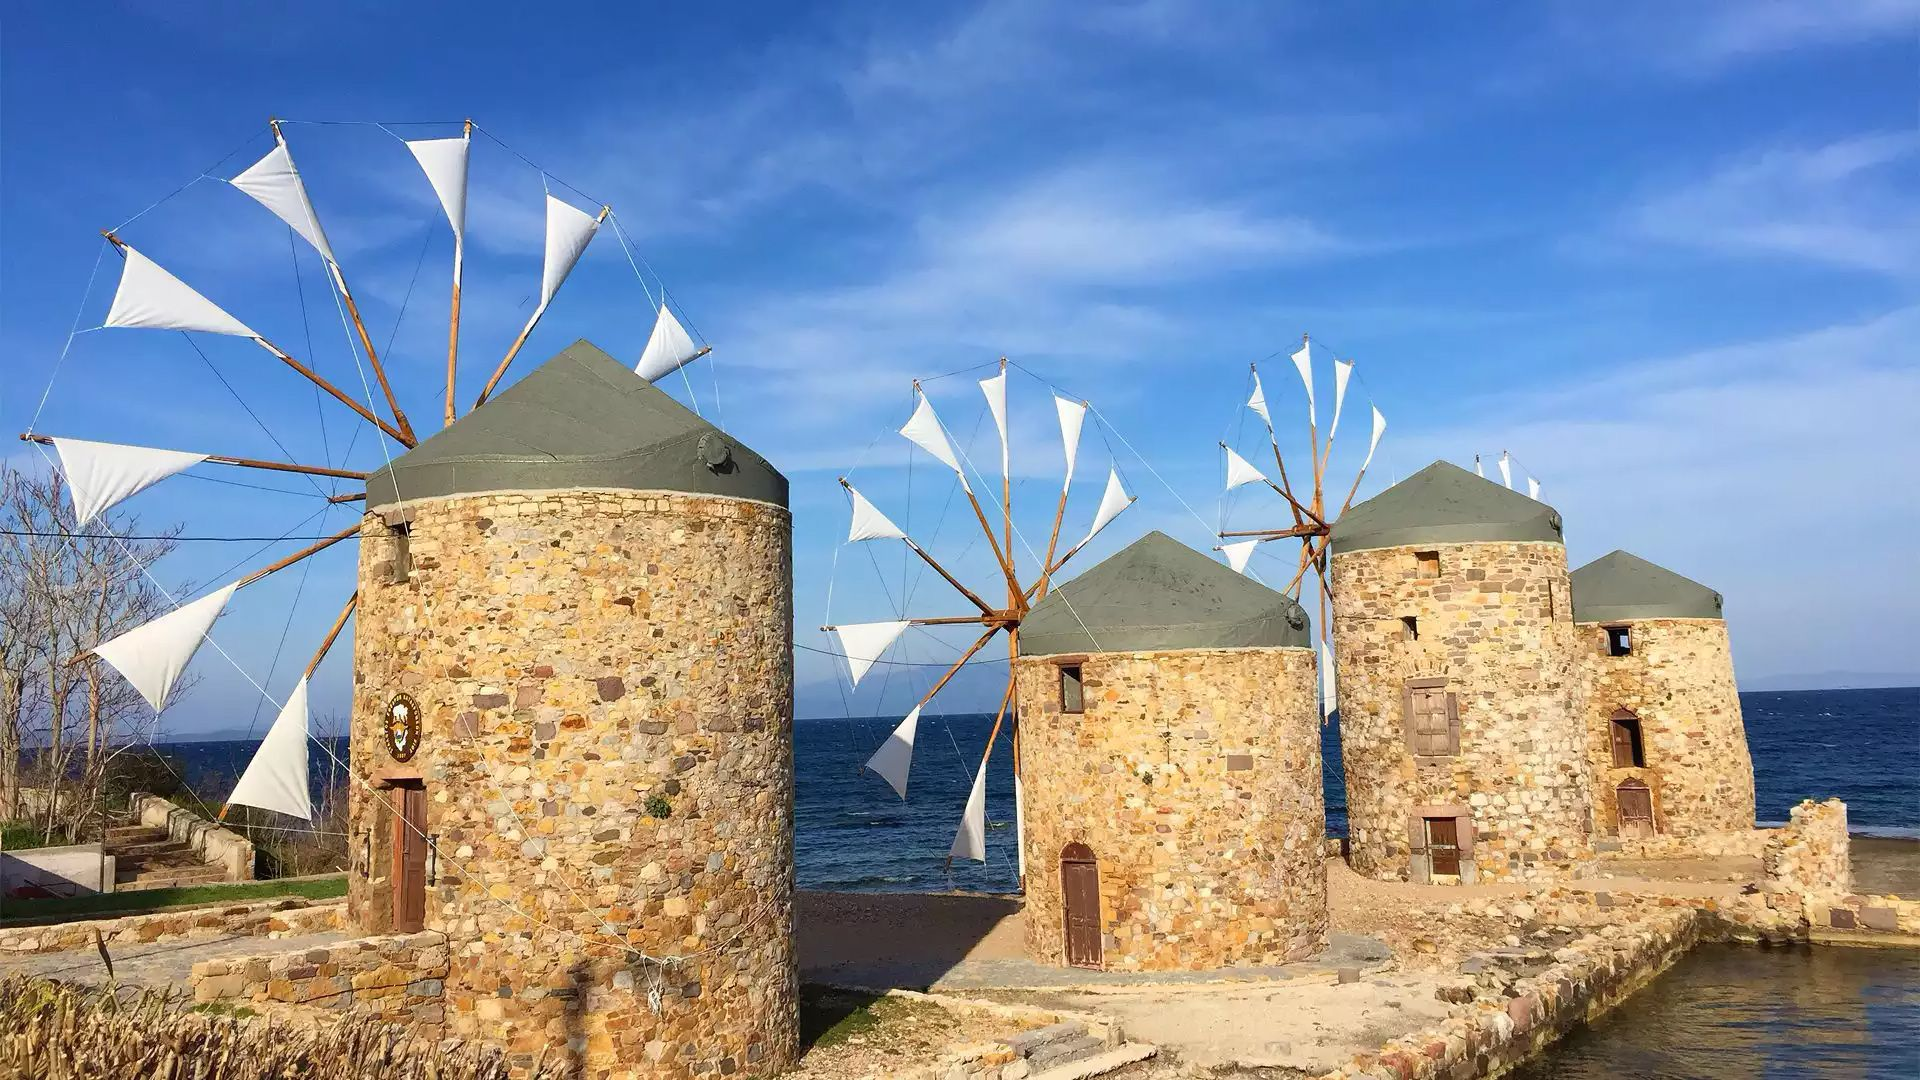 Get to know the different aspects of Chios